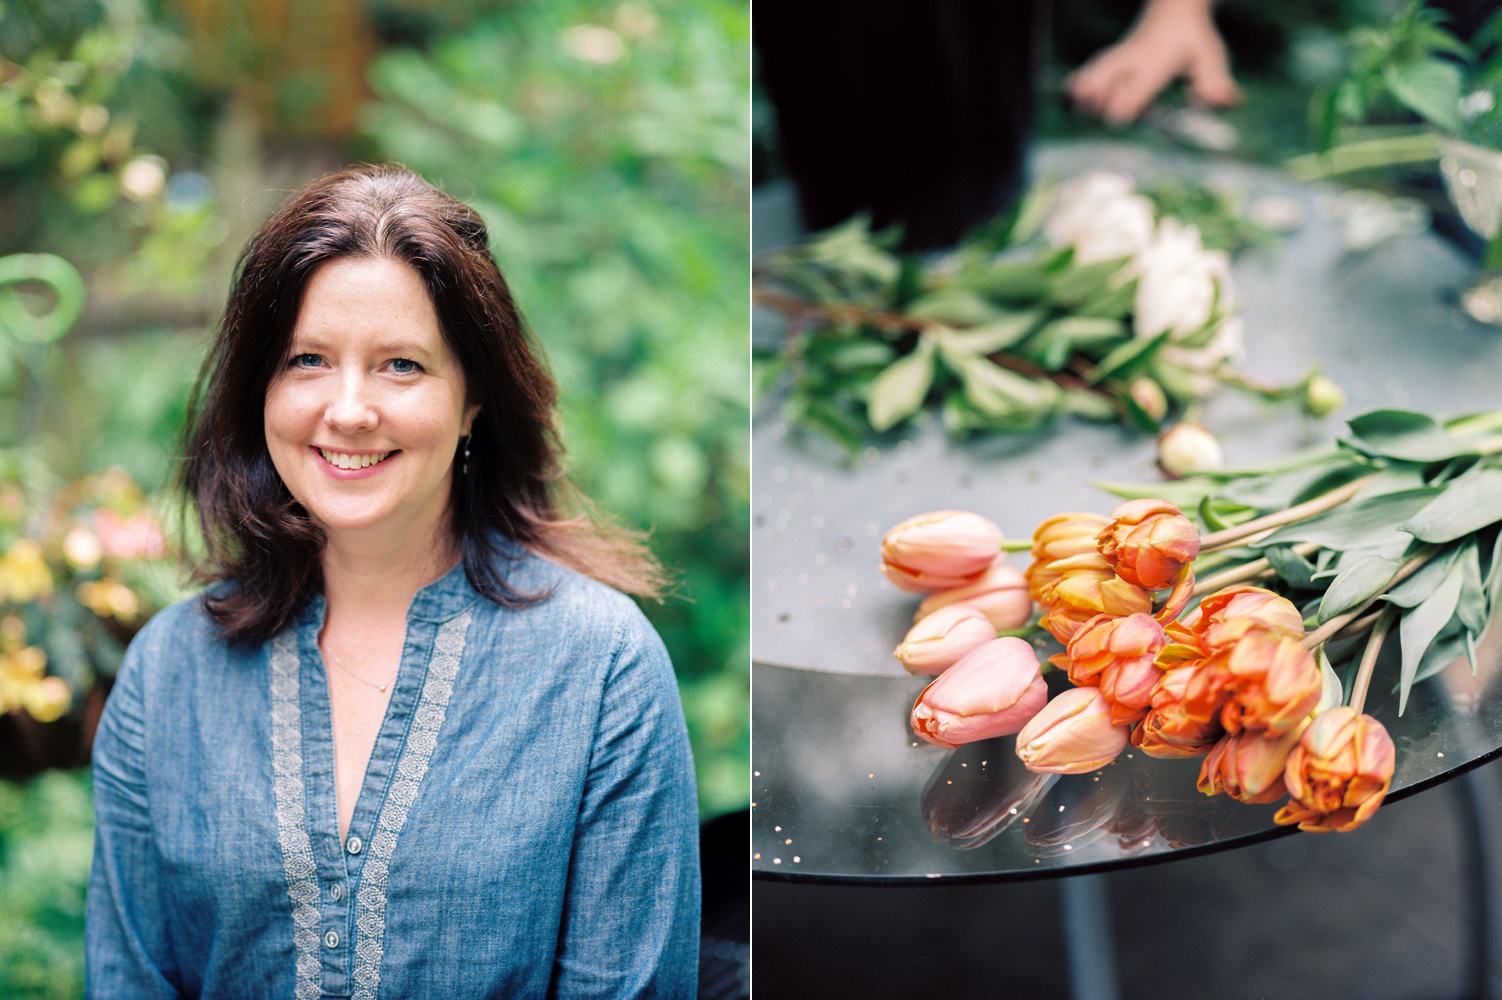 seattle wedding florist smashing petals portrait photography.jpg